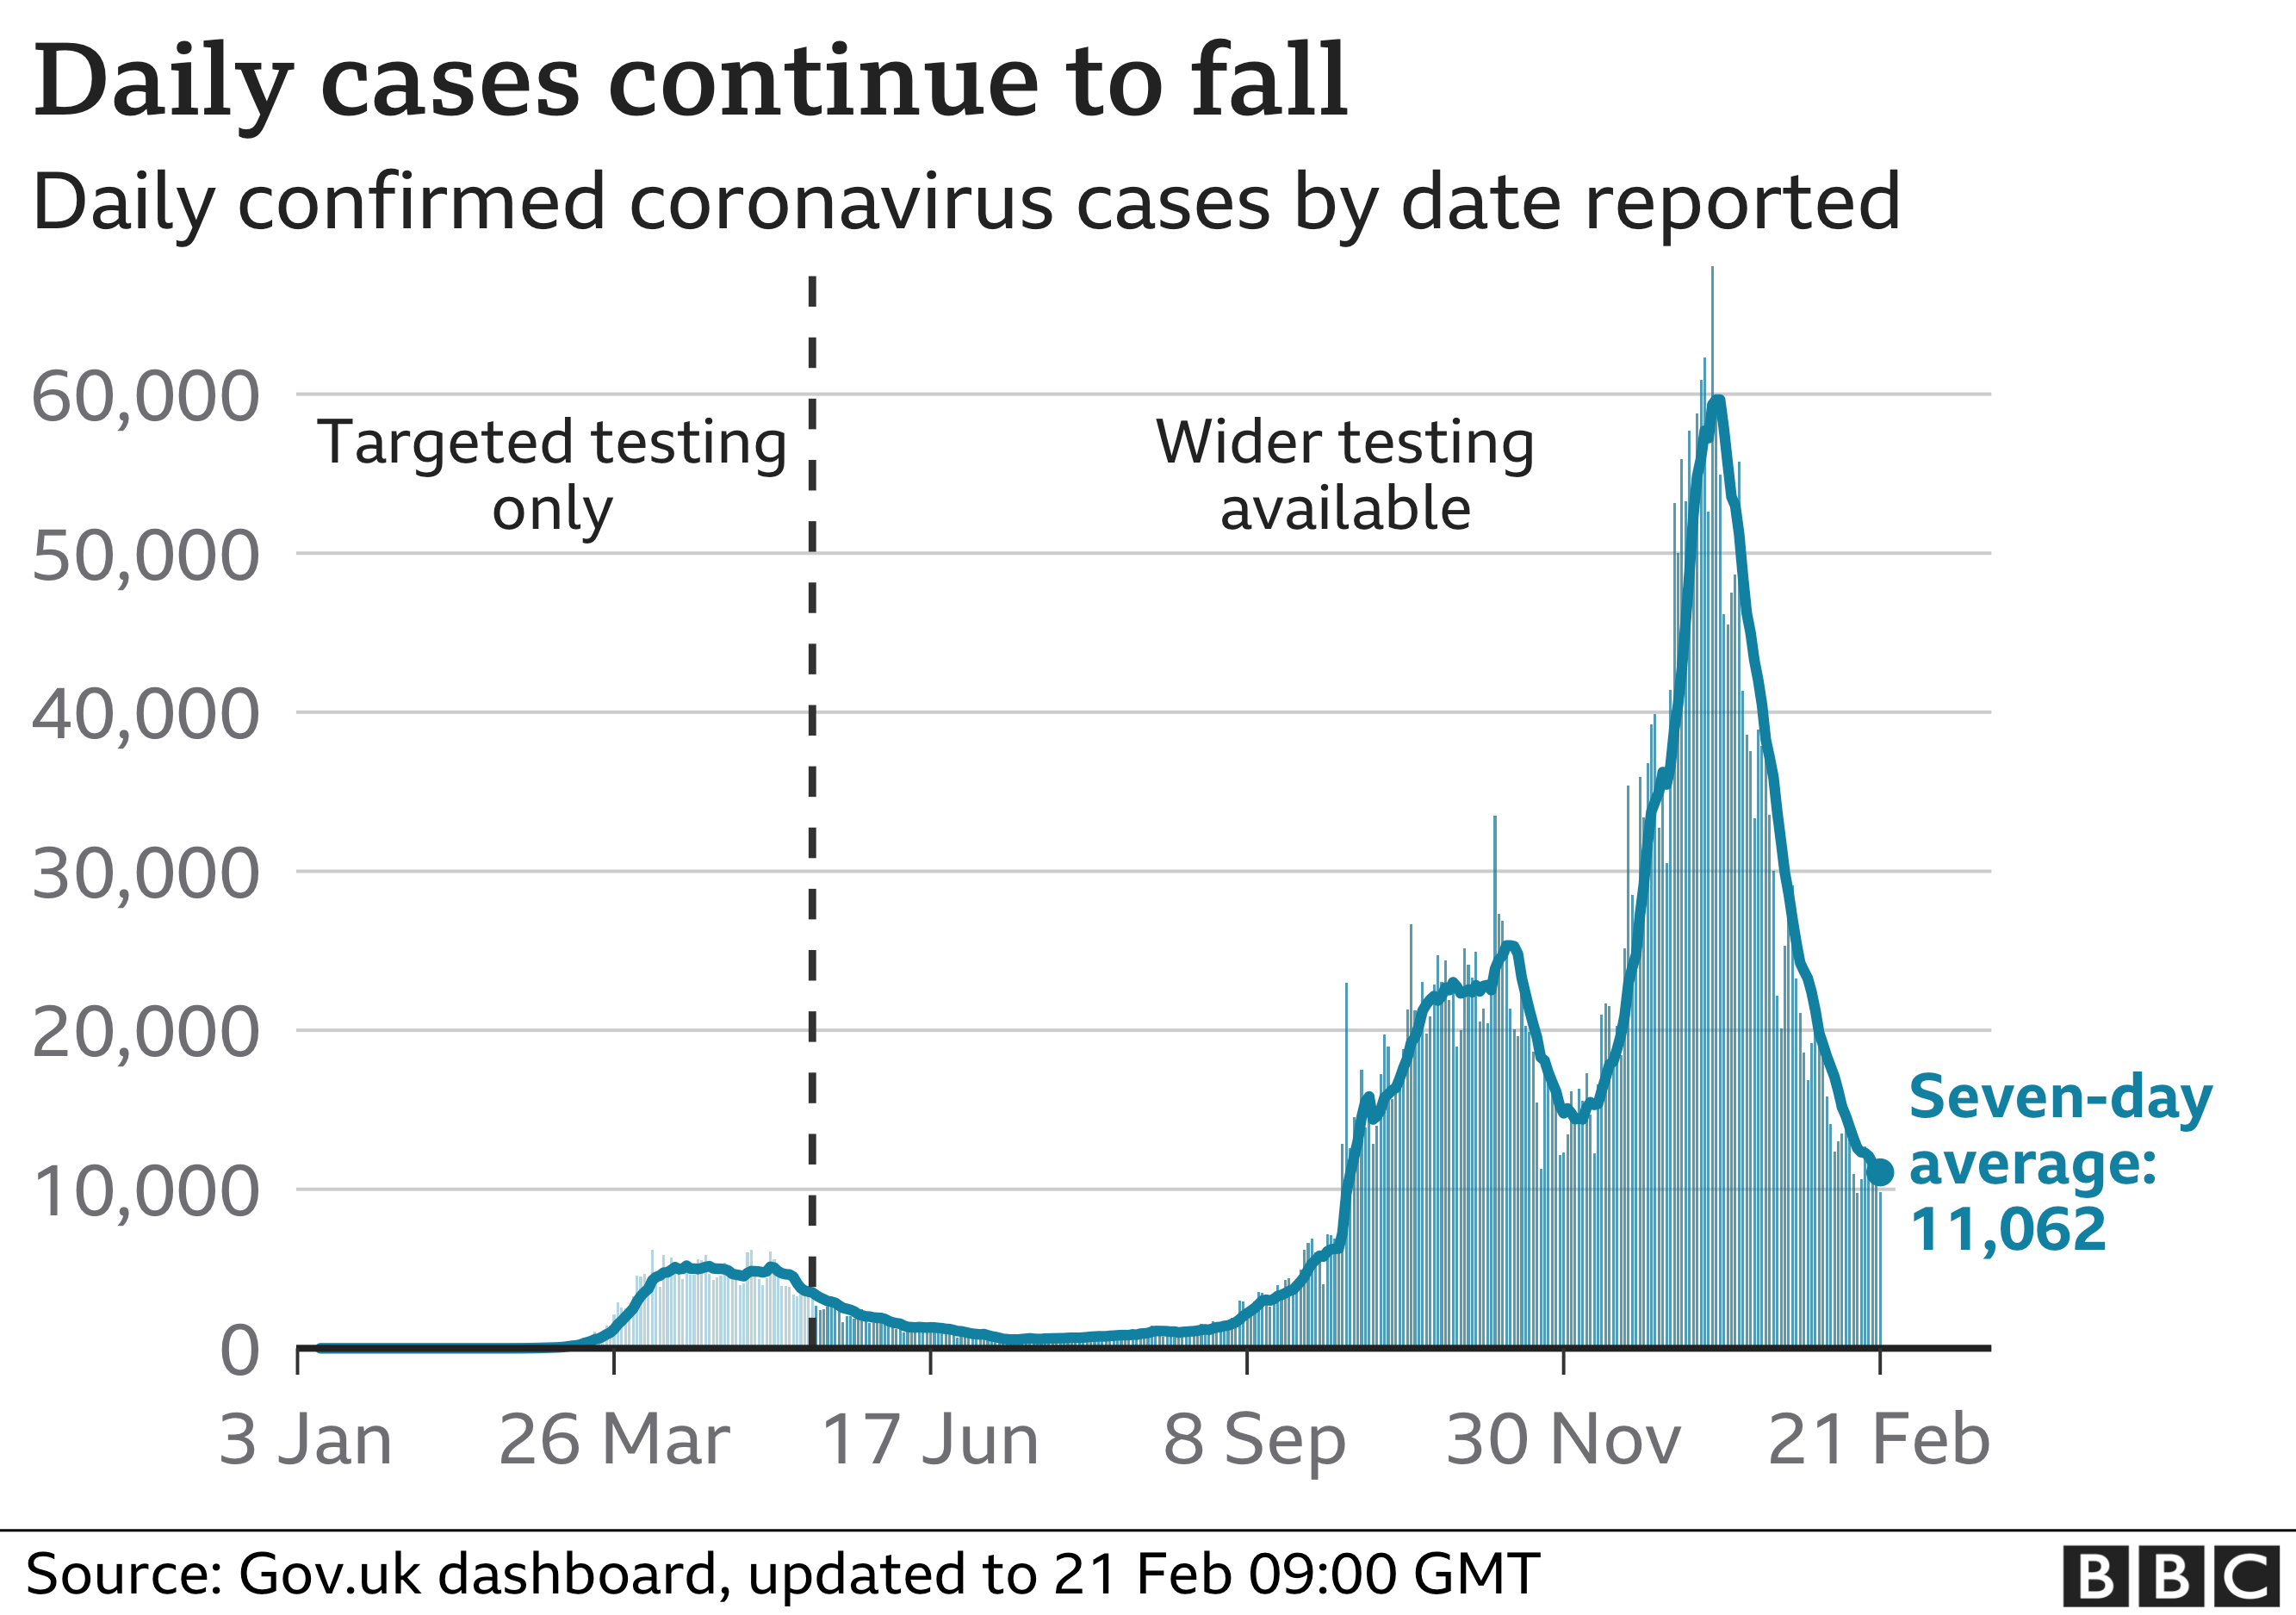 Chart shows cases continuing to fall. Updated 21 Feb.